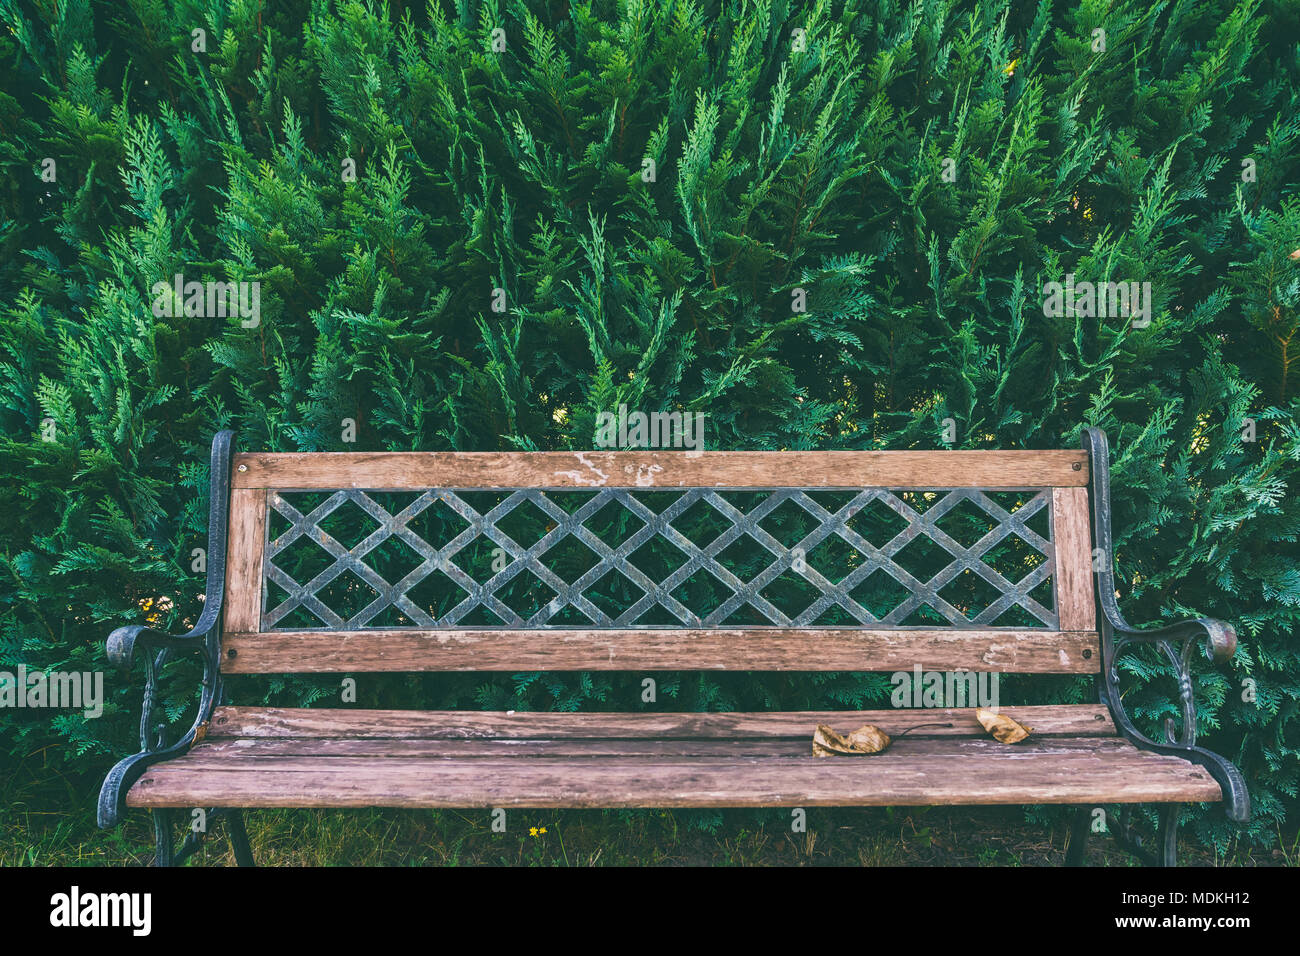 Old Style Park Bench In Front Of Hedge In Garden Stock Photo